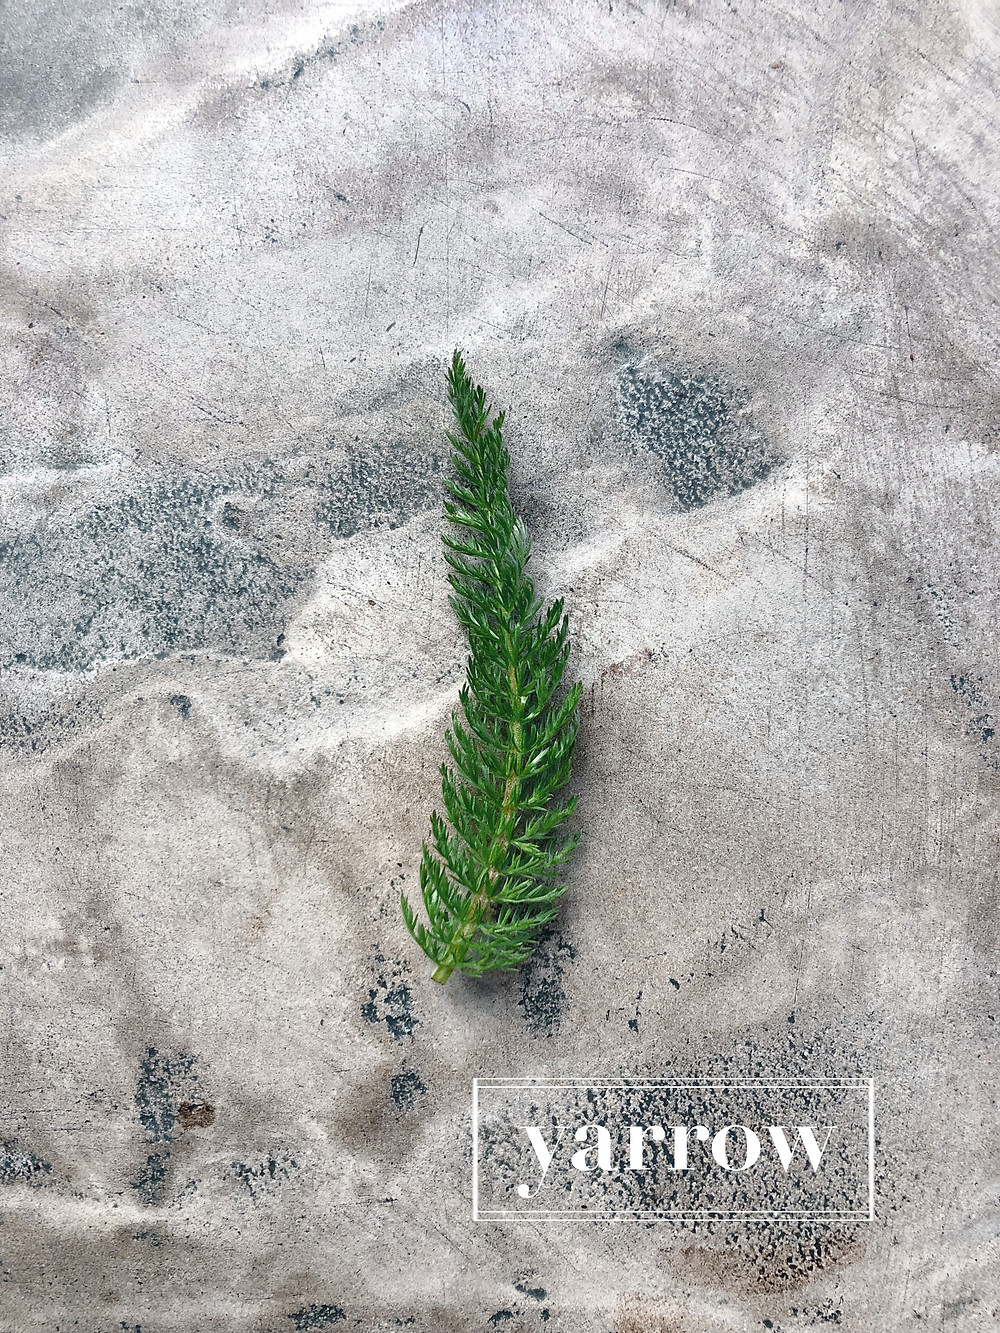 Foraging for yarrow